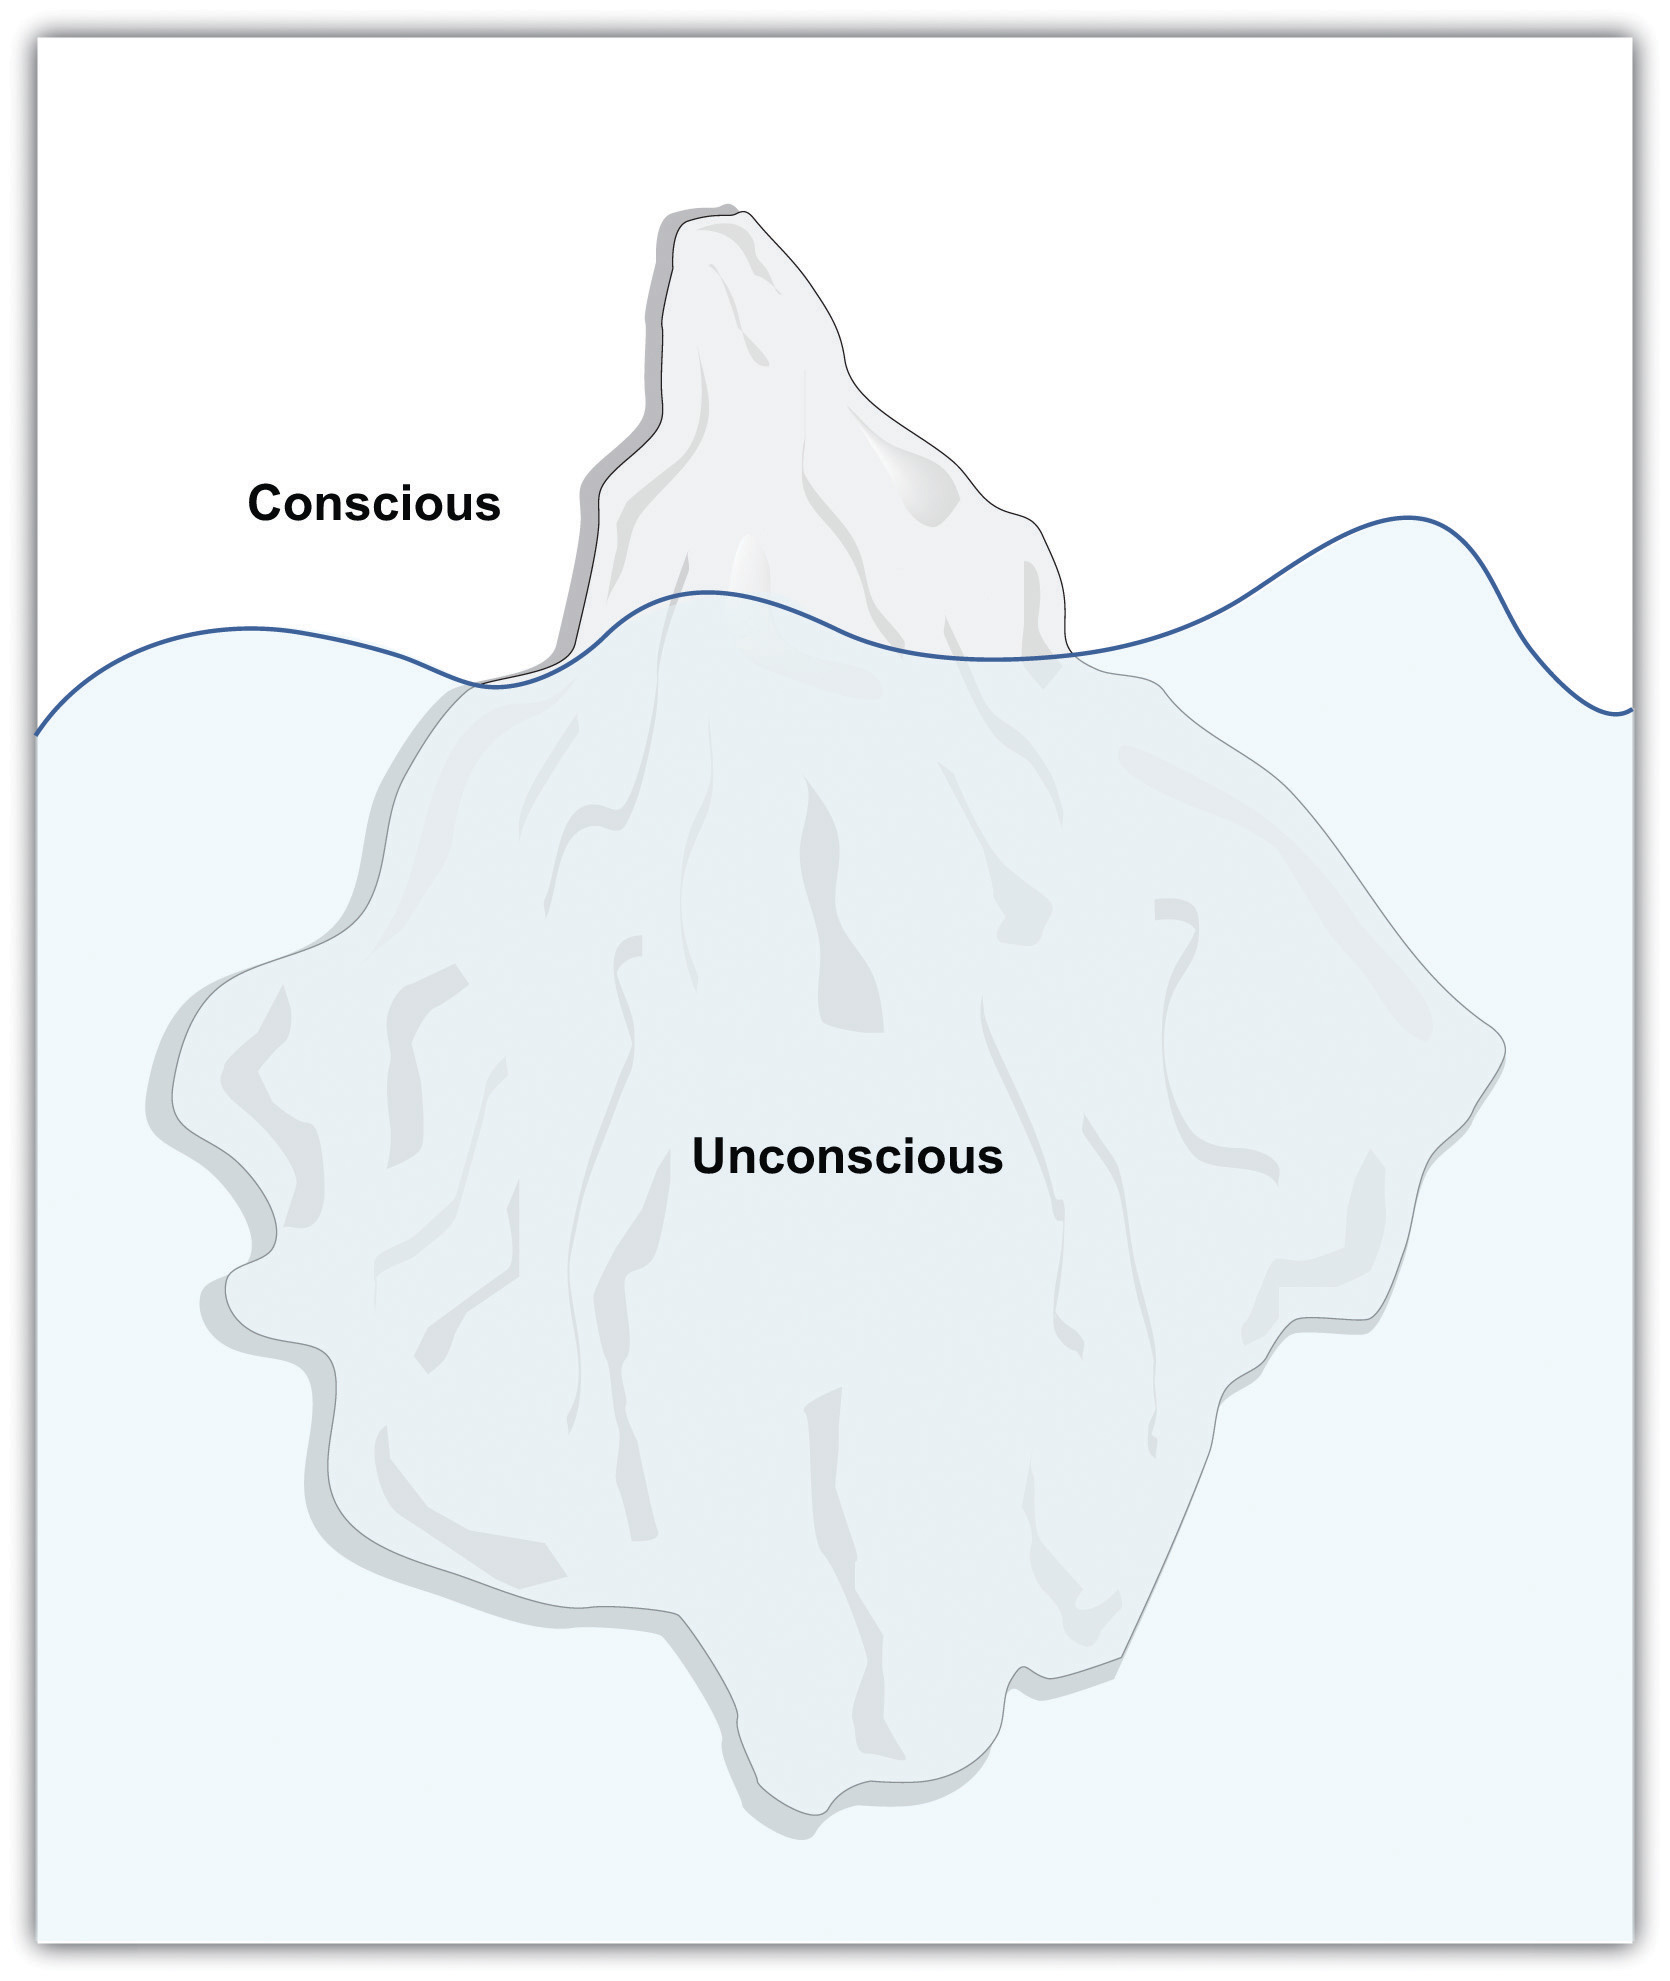 The Mind as an Iceberg (Conscious is the tip, the unconscious is far under water)